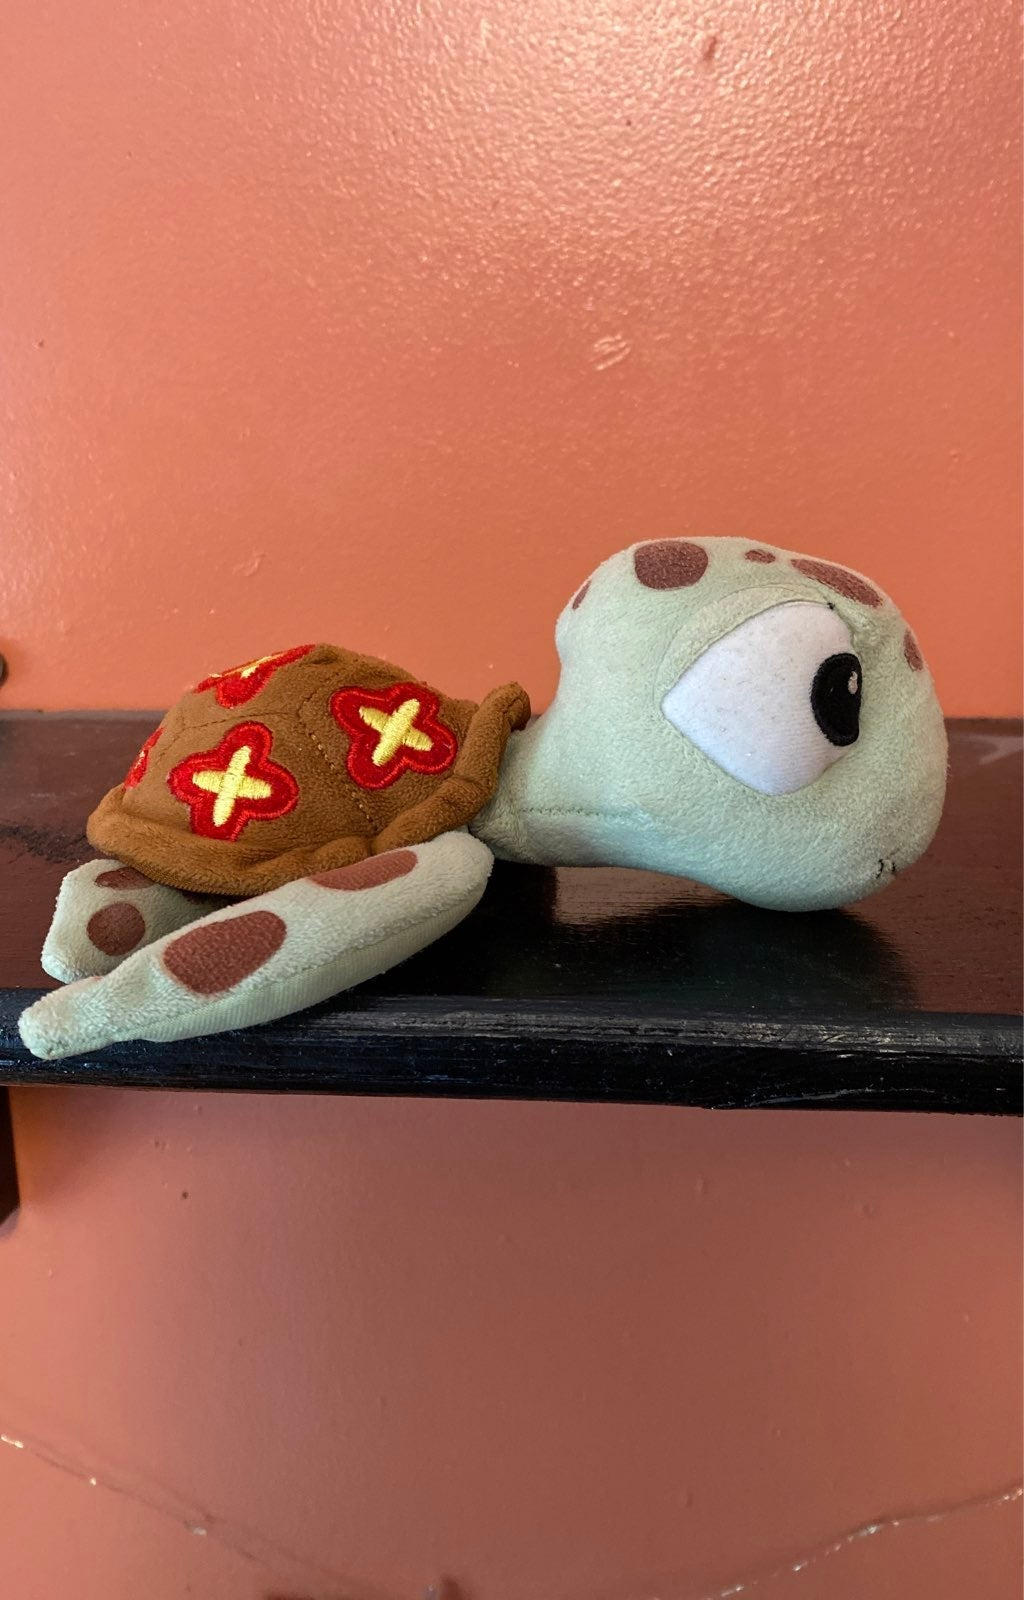 Squirt plush toy. (Finding Nemo)